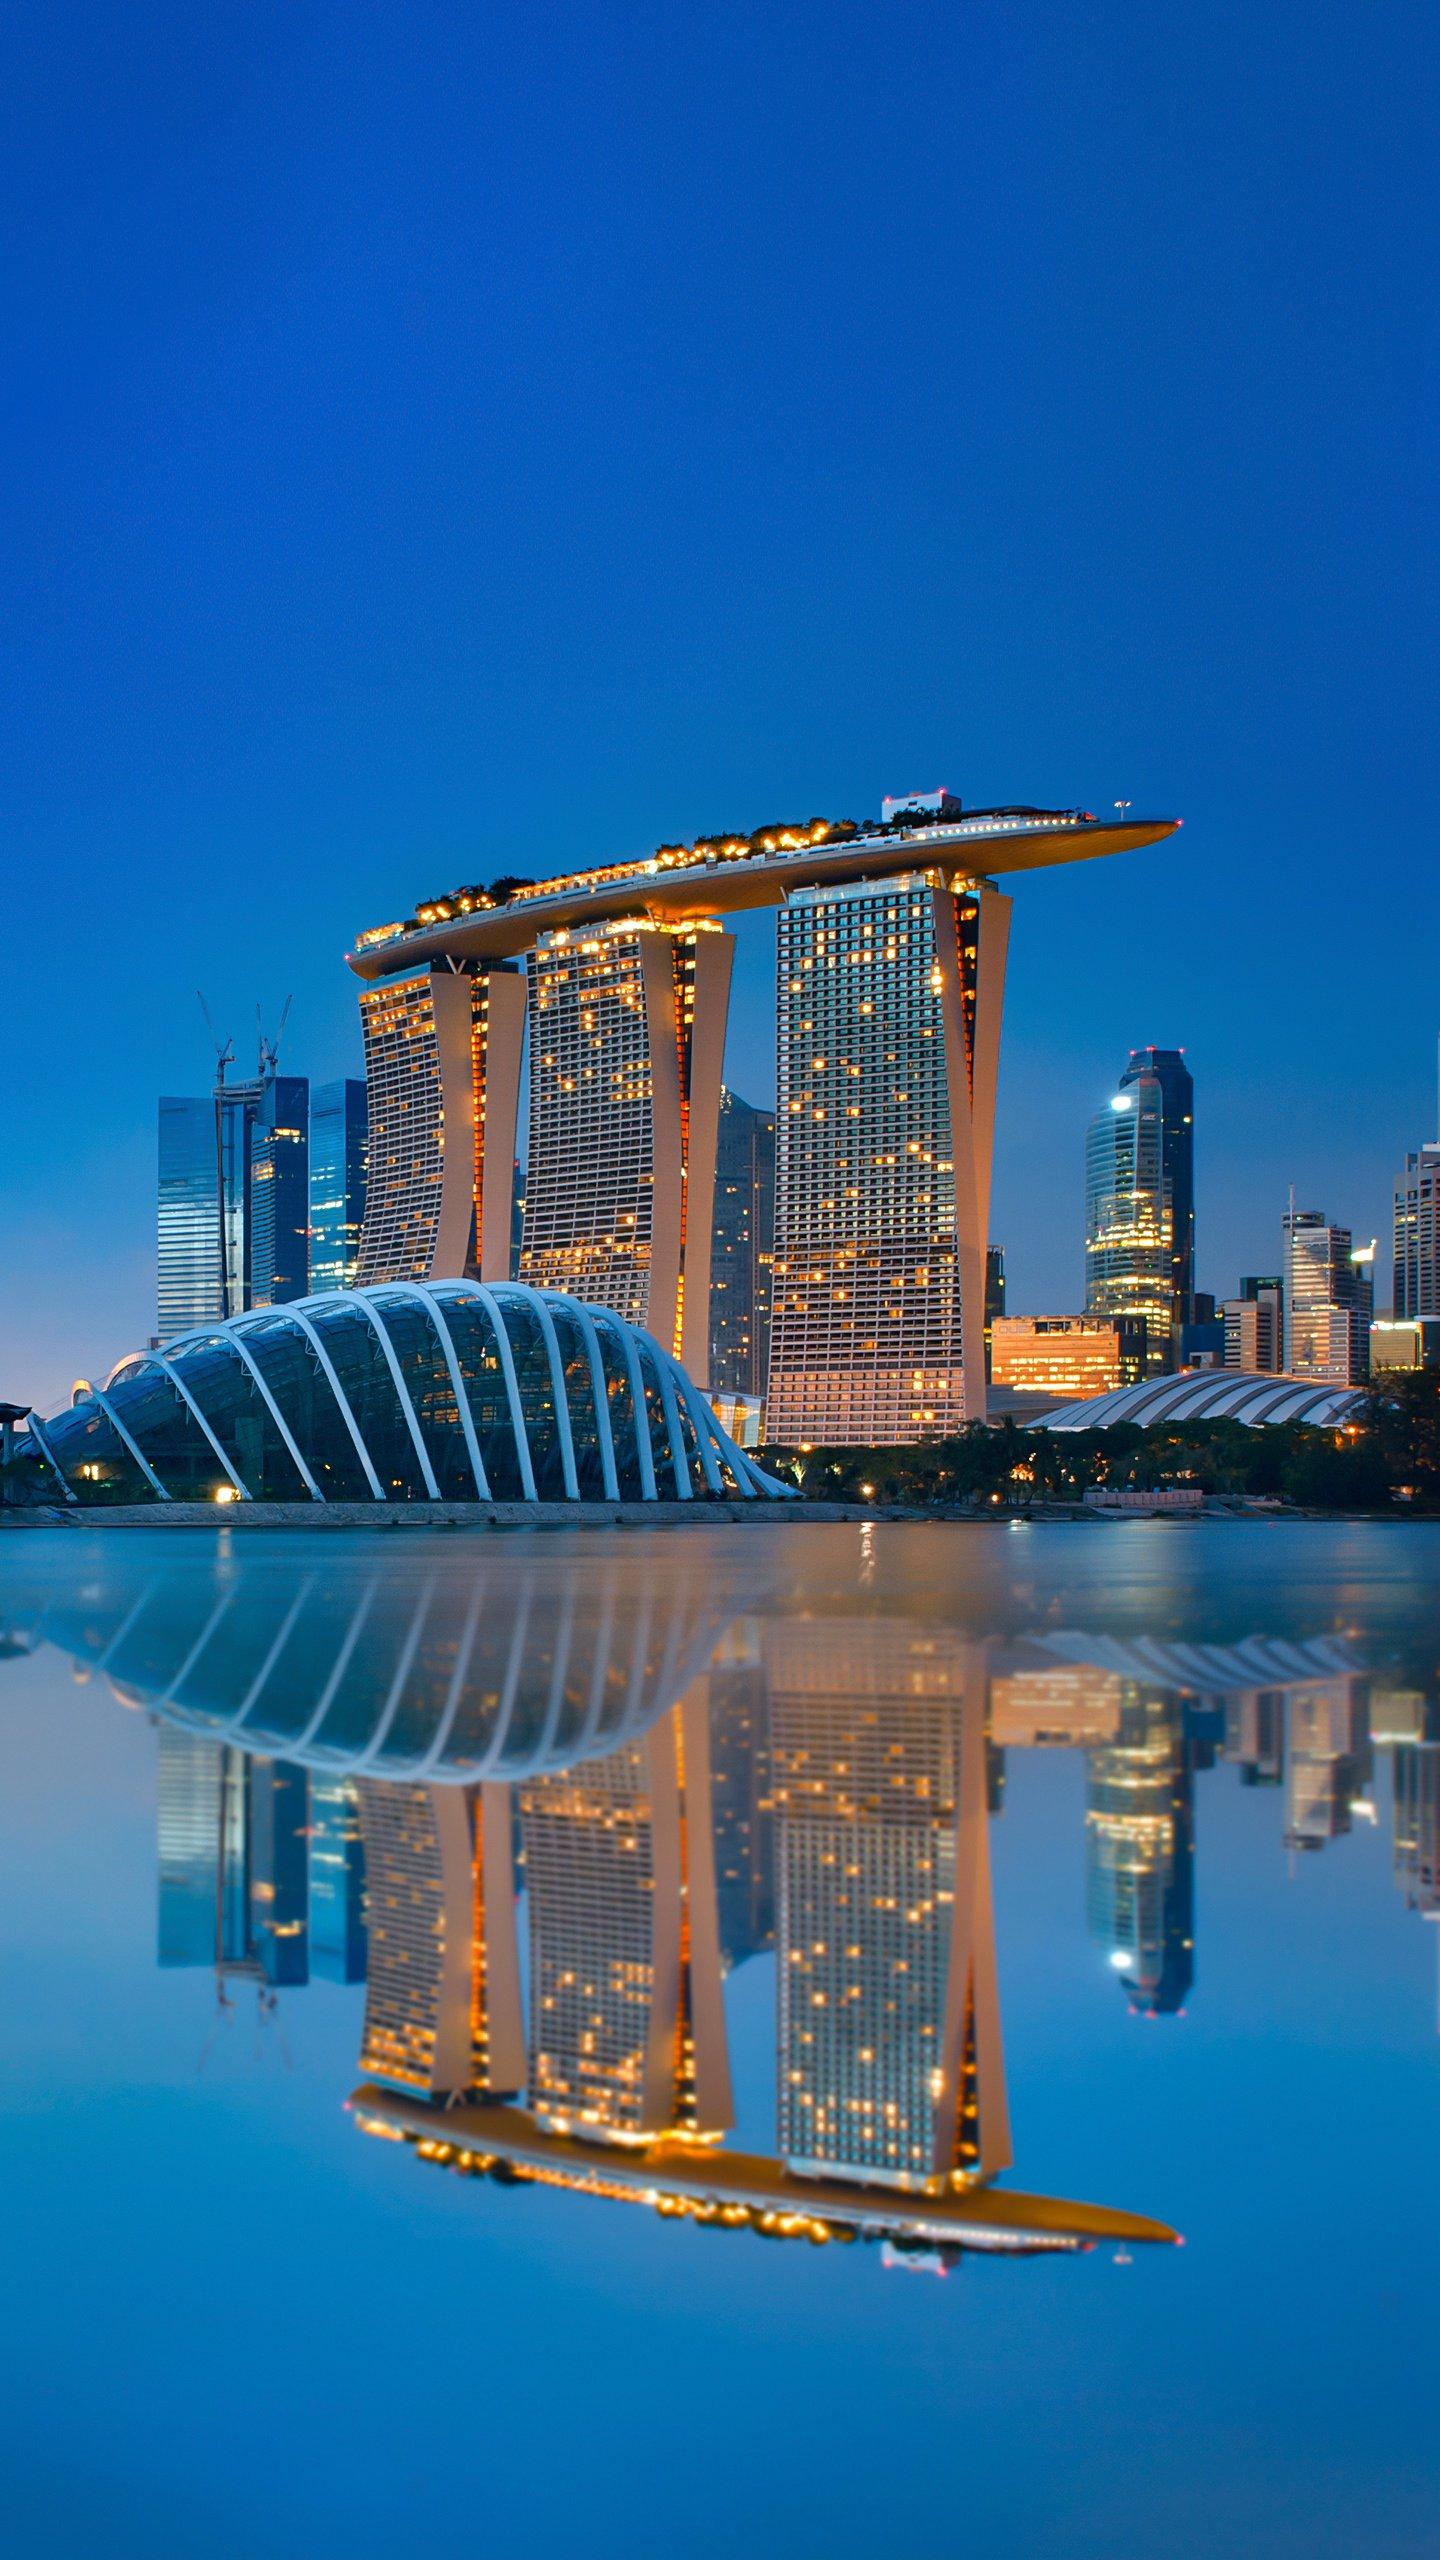 Singapore's futuristic architecture. Let's take a look at these ten super futuristic buildings in Singapore. Don't forget to go shopping next time.